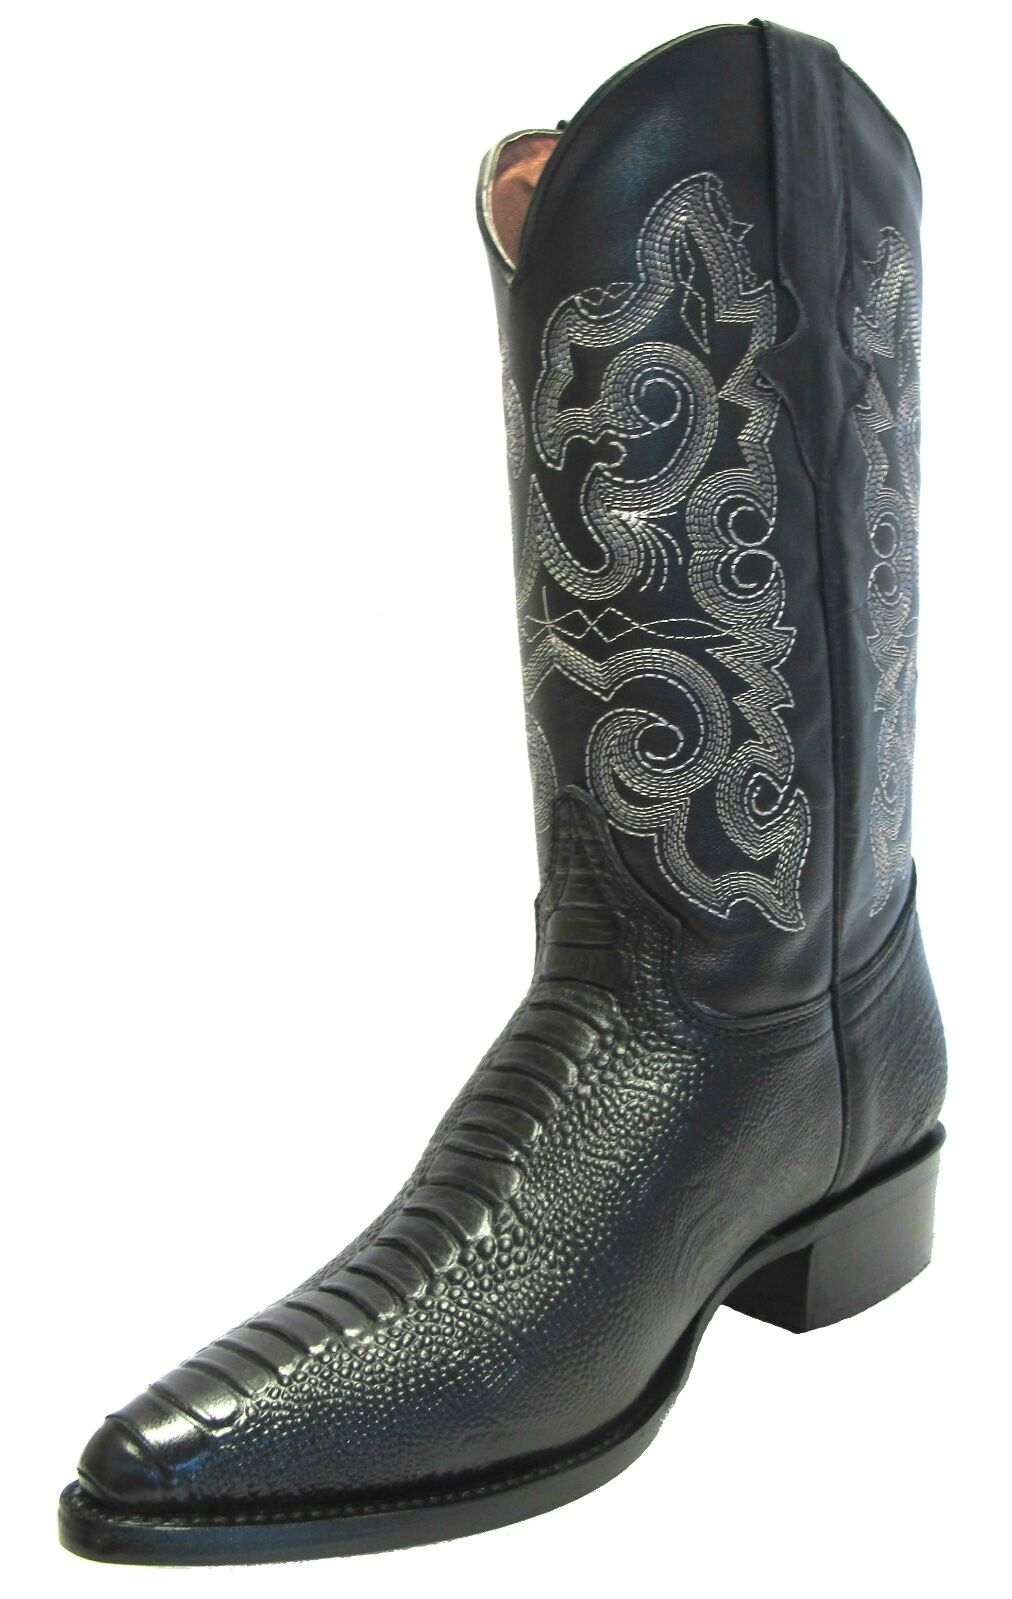 Mens New Leather Ostrich Leg Design Rodeo Western Cowboy boots J Toe Black